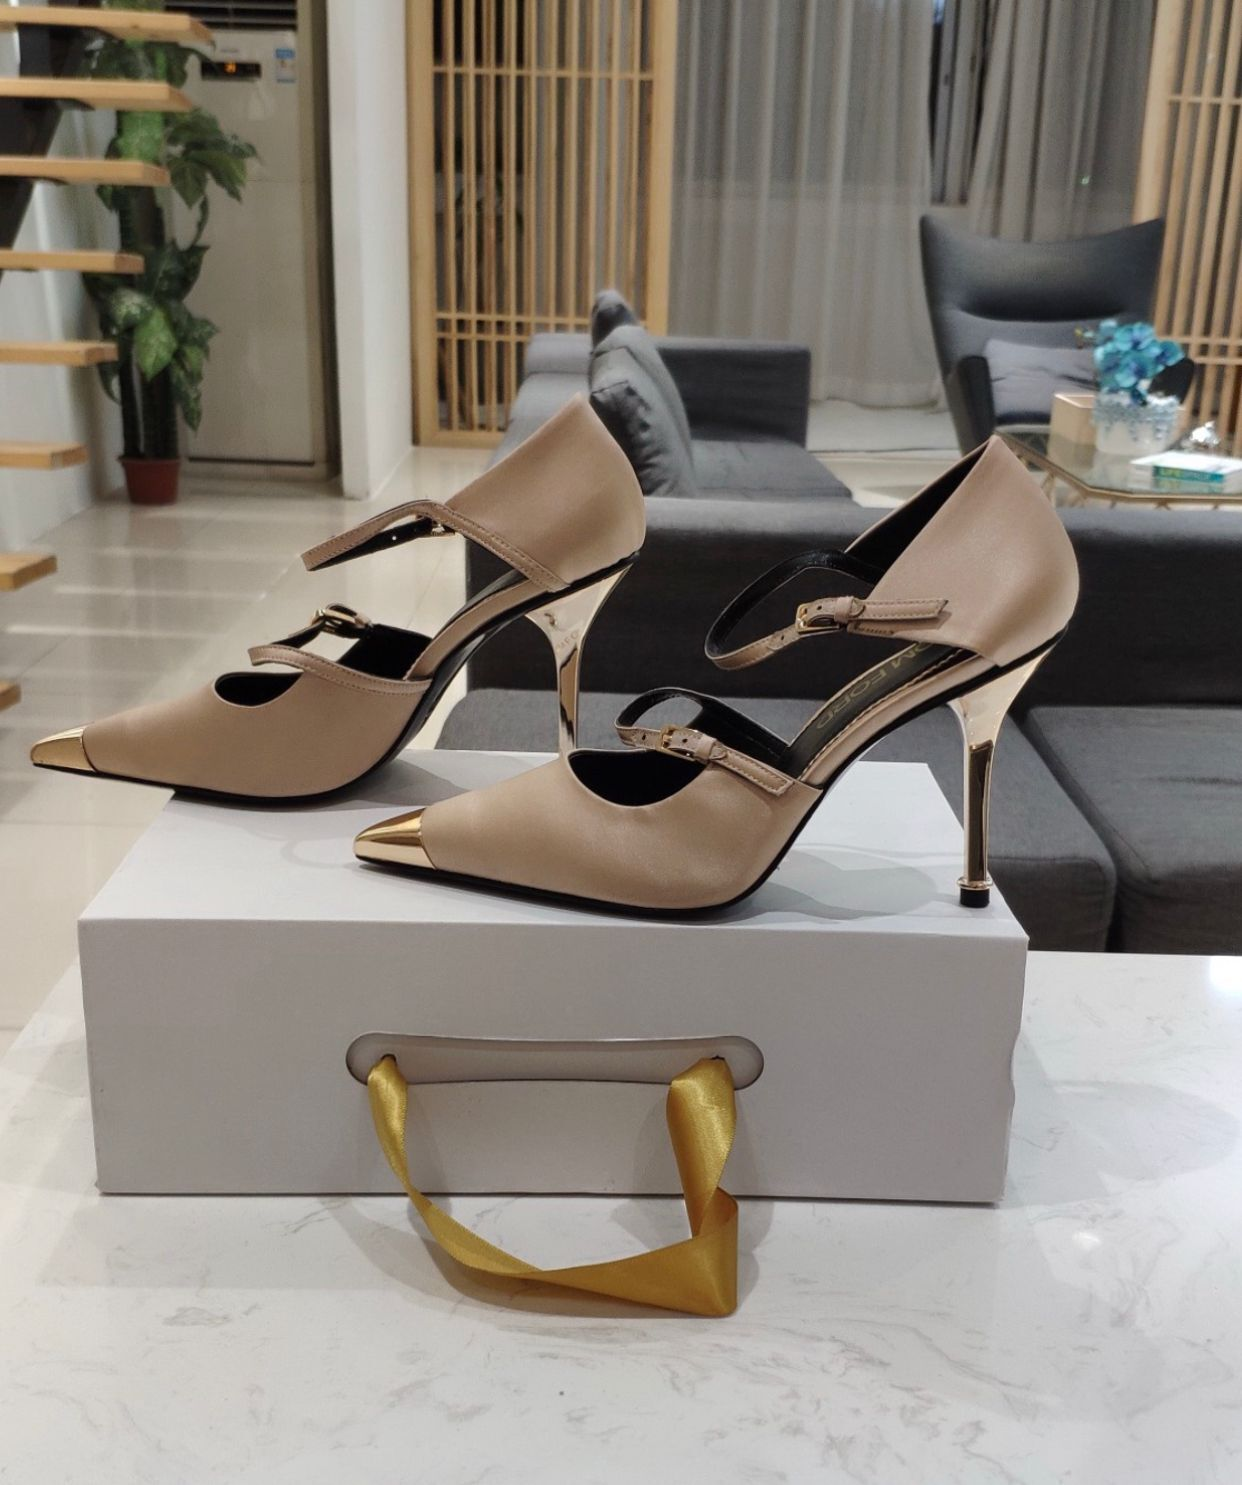 Tom Ford shoes 2699 Nude